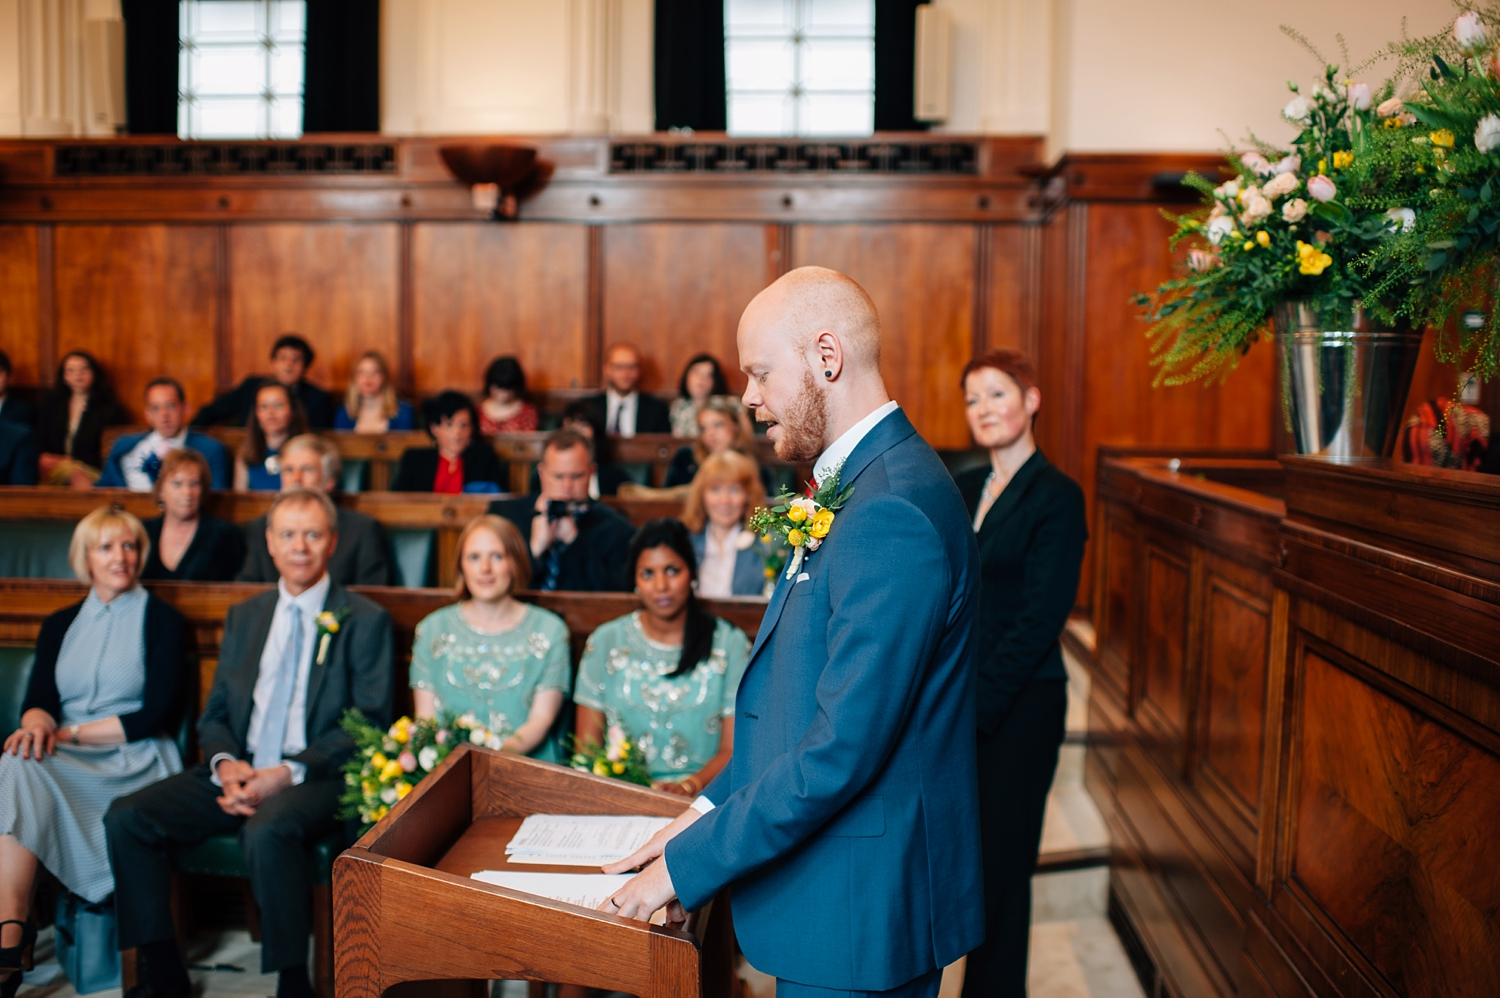 0046-lisa-devine-alternative-wedding-photography-london-hackney-dalston-london-photography-townhall-hotel.JPG